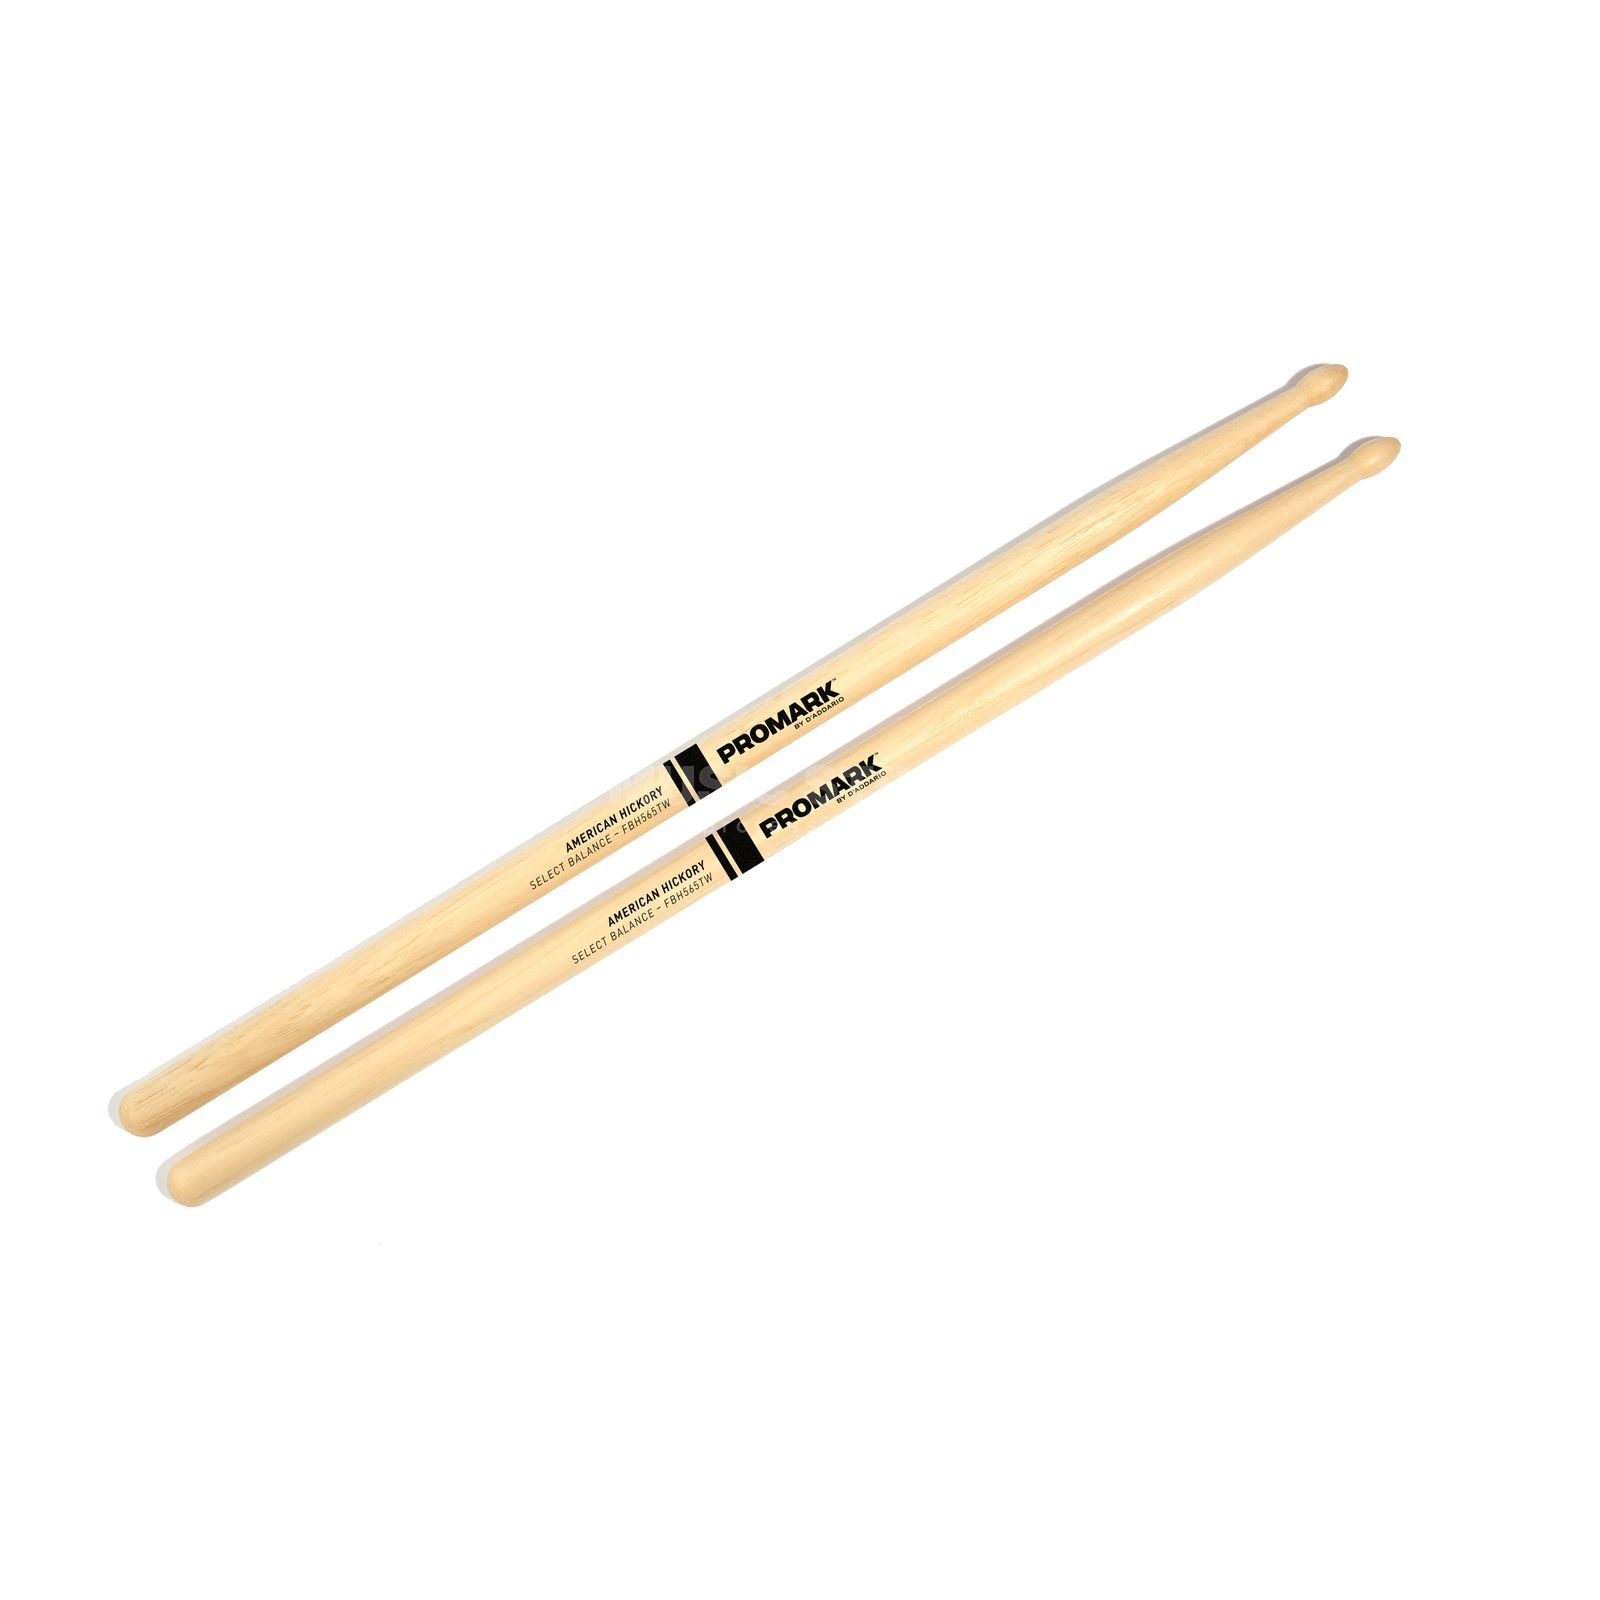 PRO-MARK Select Balance Sticks FBH565TW Forward Balance, Wood Tip Produktbillede